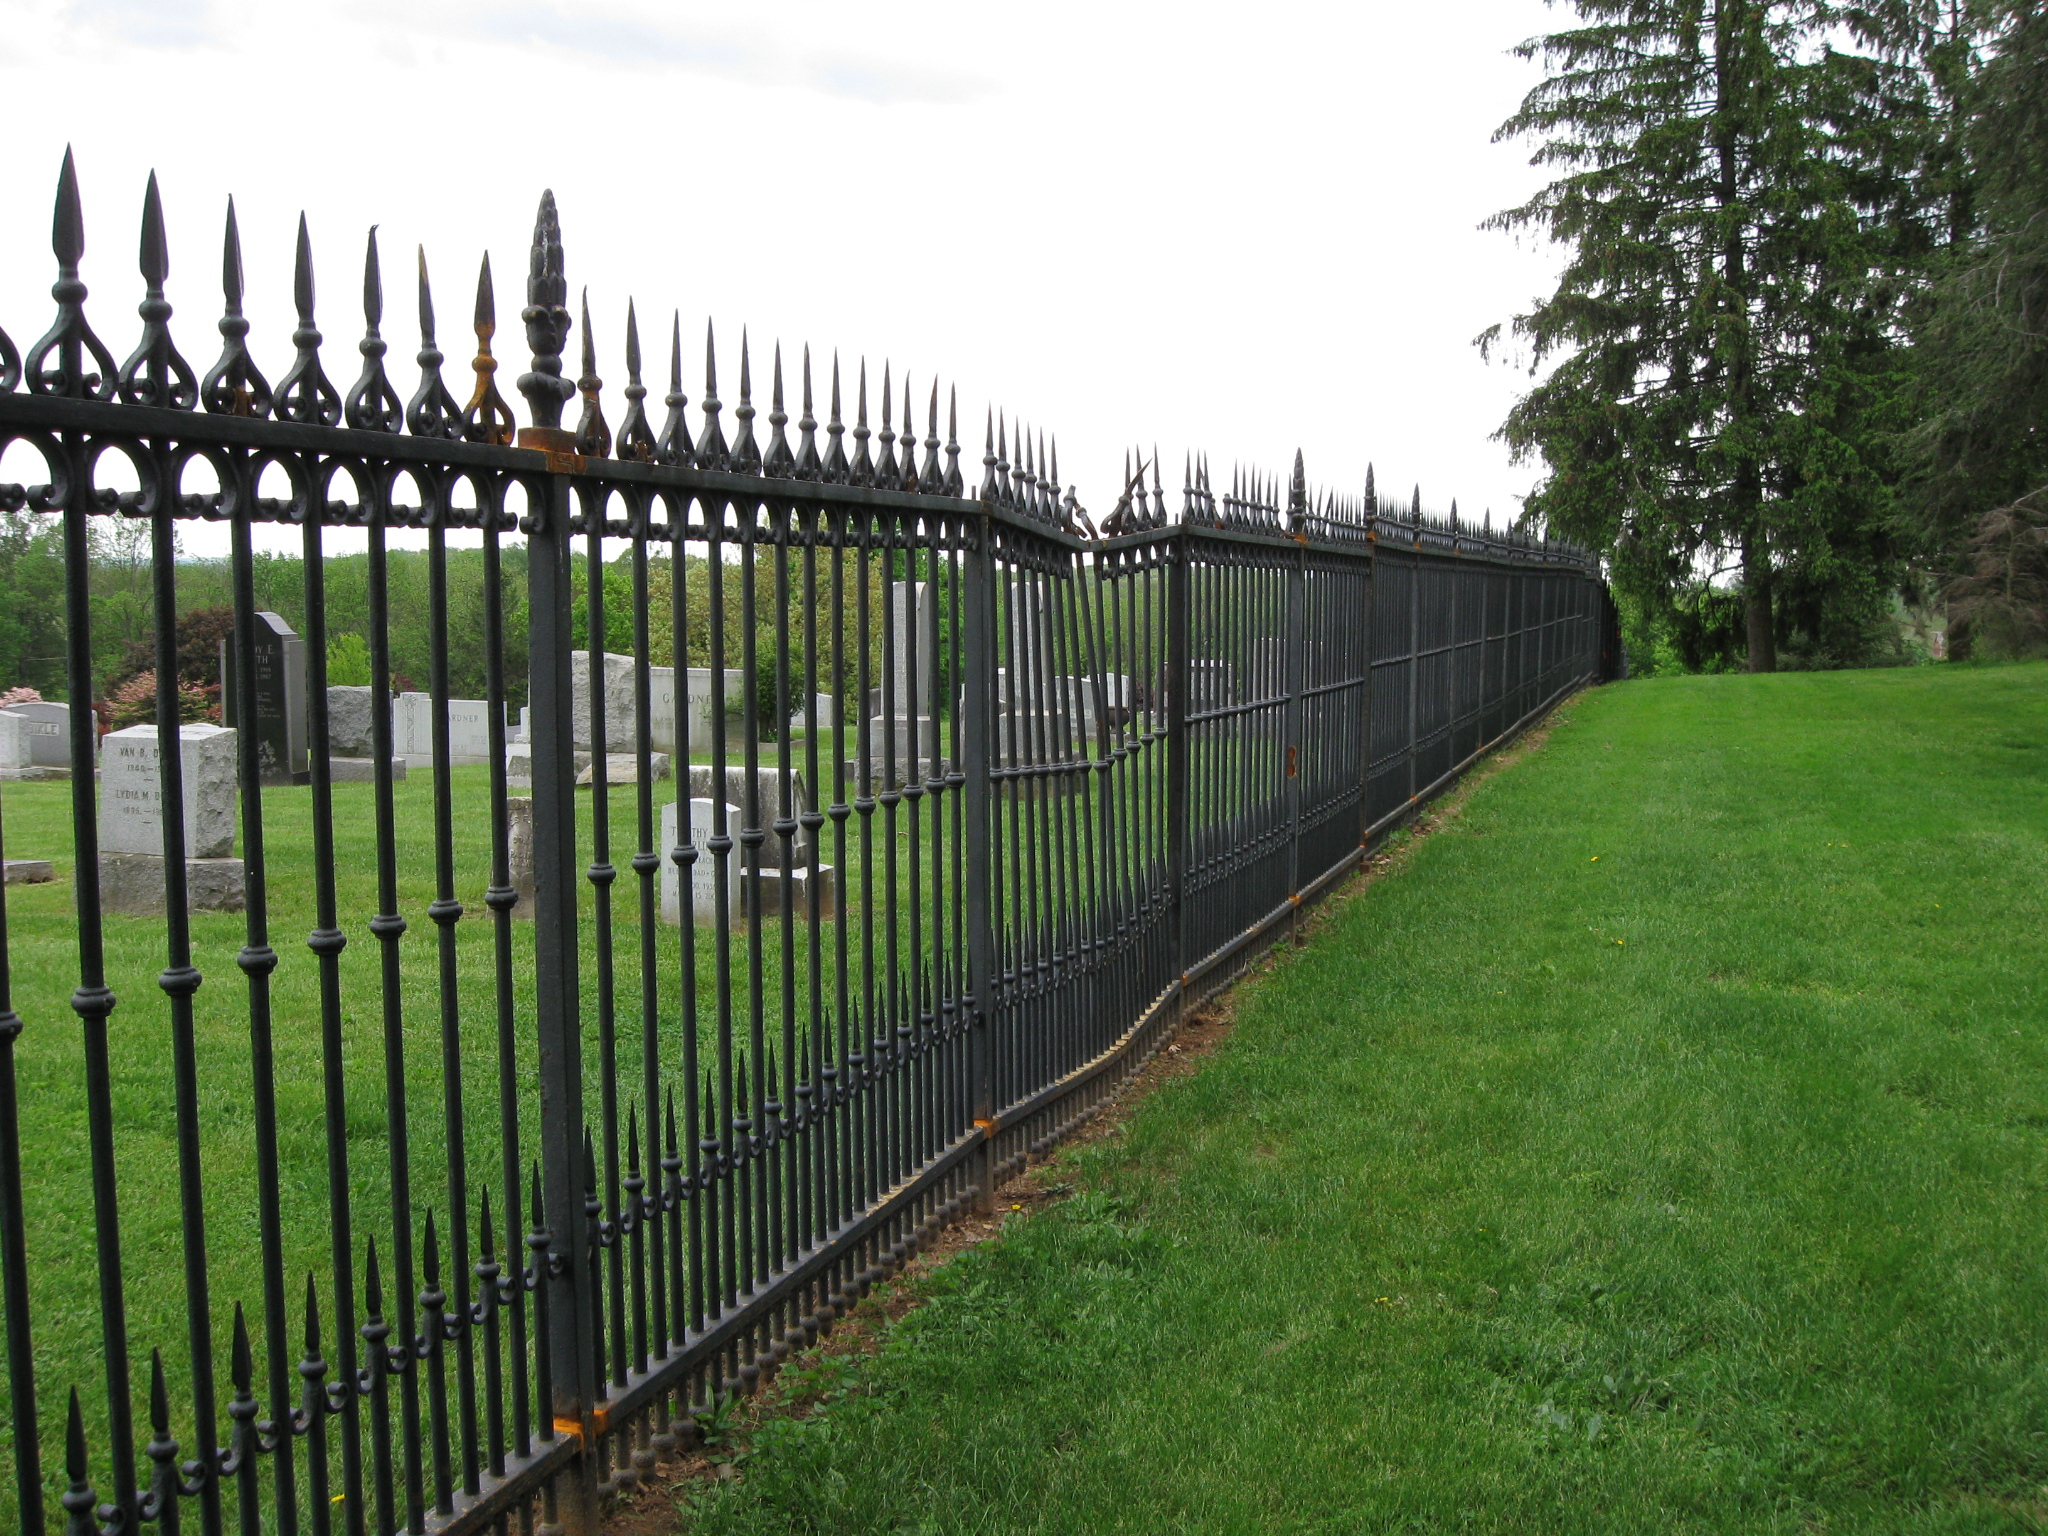 Gettysburg Cemetery Witness Tree Sickles Witness Fence